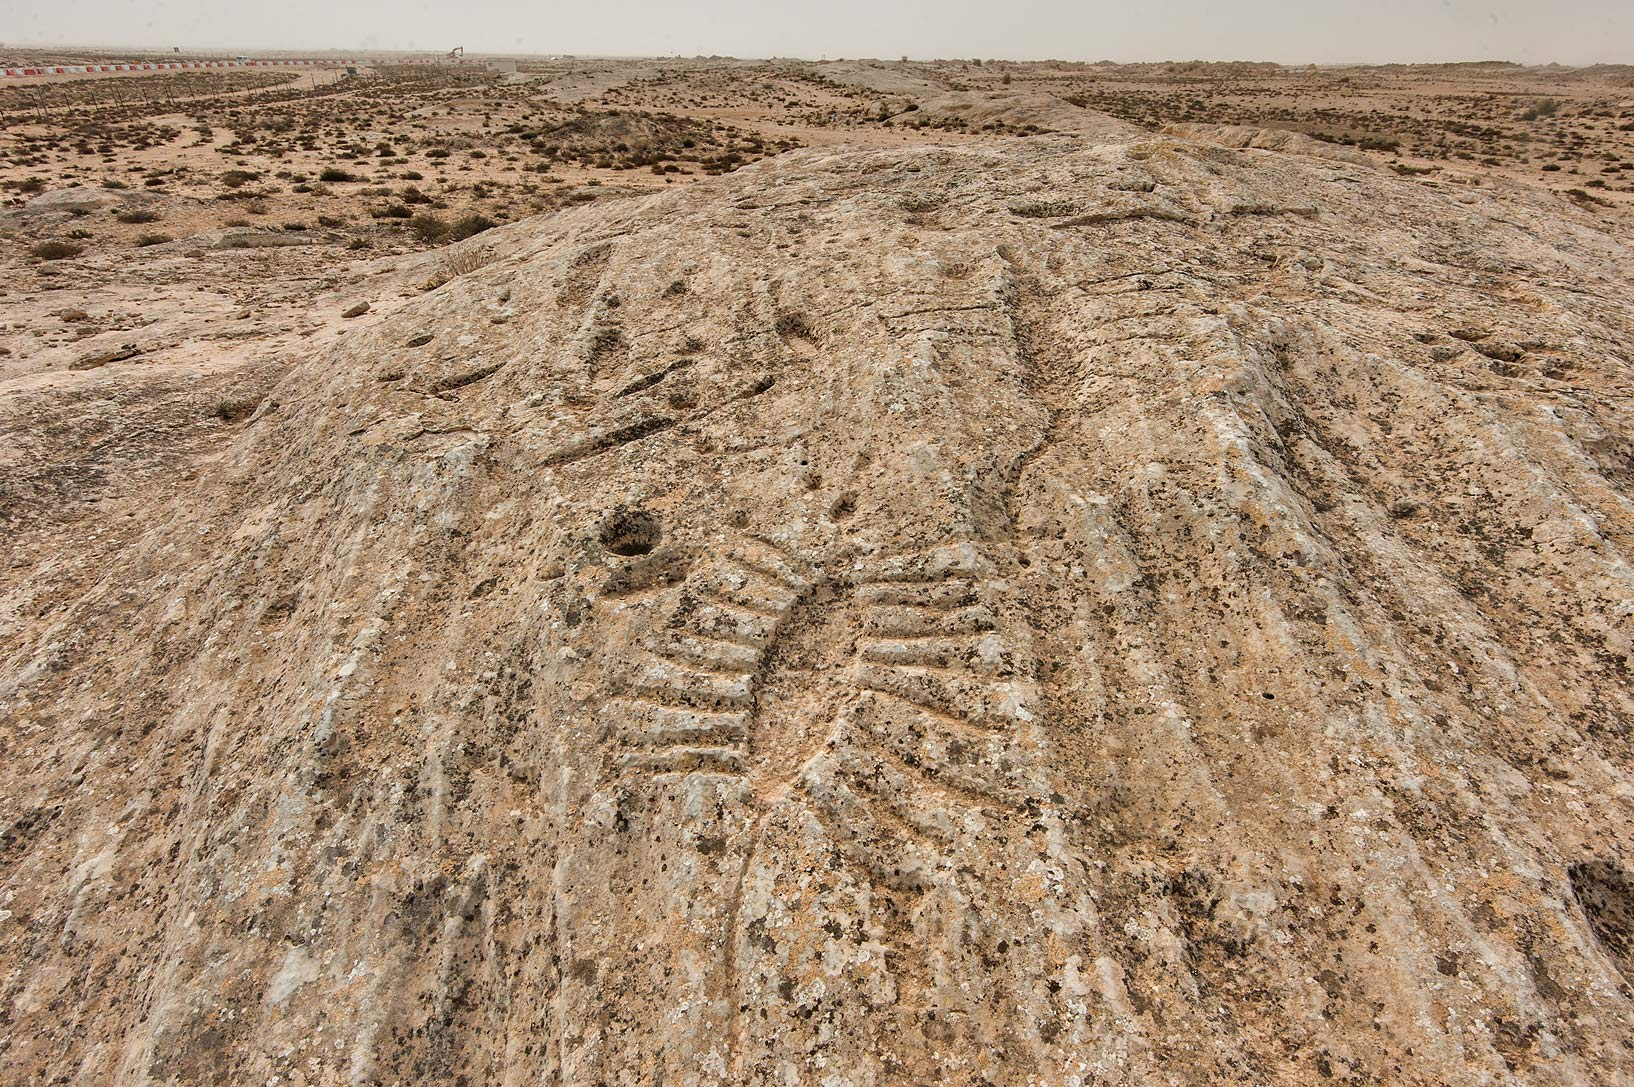 Rock carvings (stone engravings, petroglyphs) on...site, on north-eastern coast. Qatar